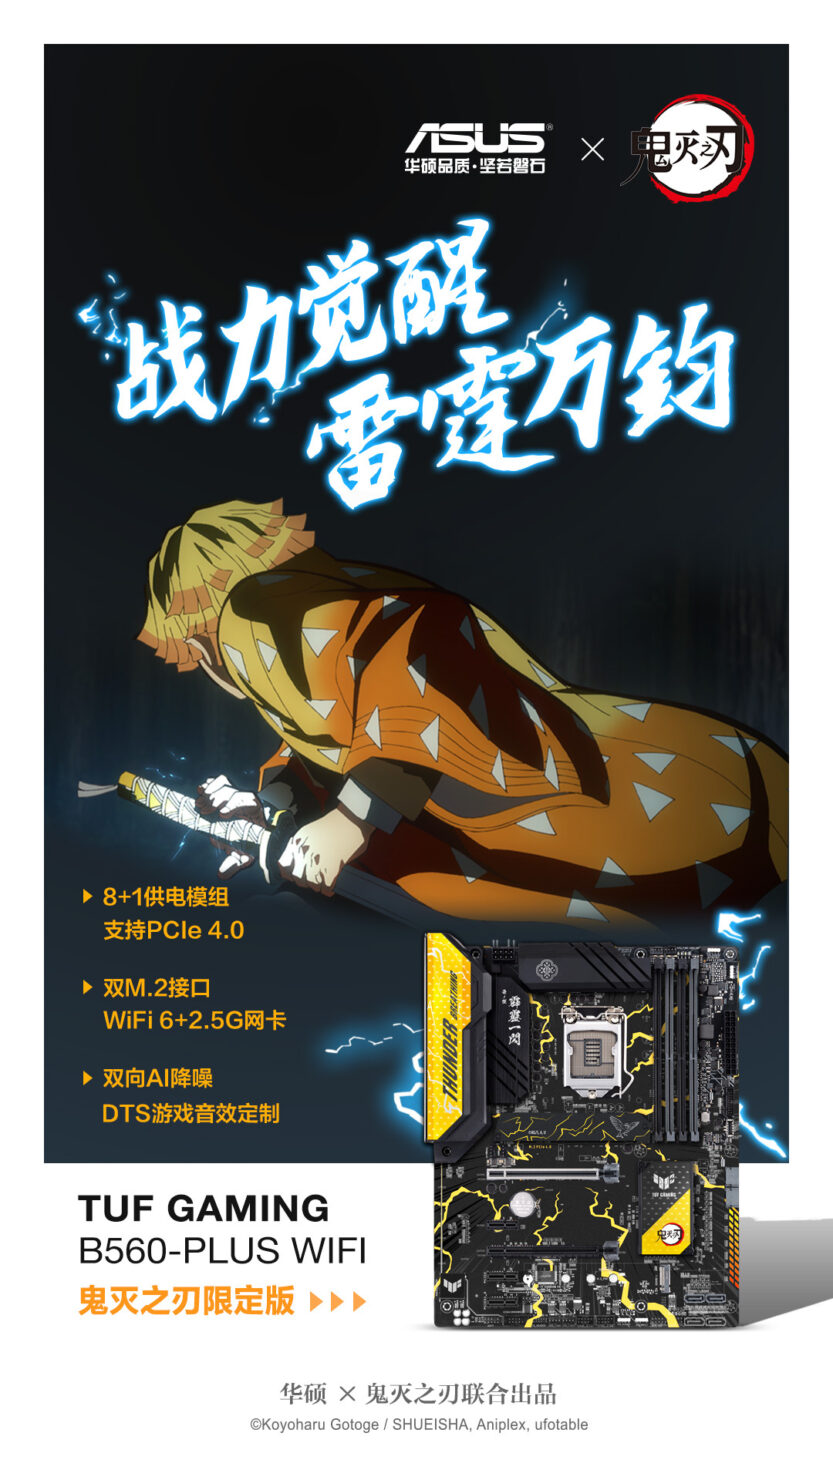 asus-demon-slayer-products-10